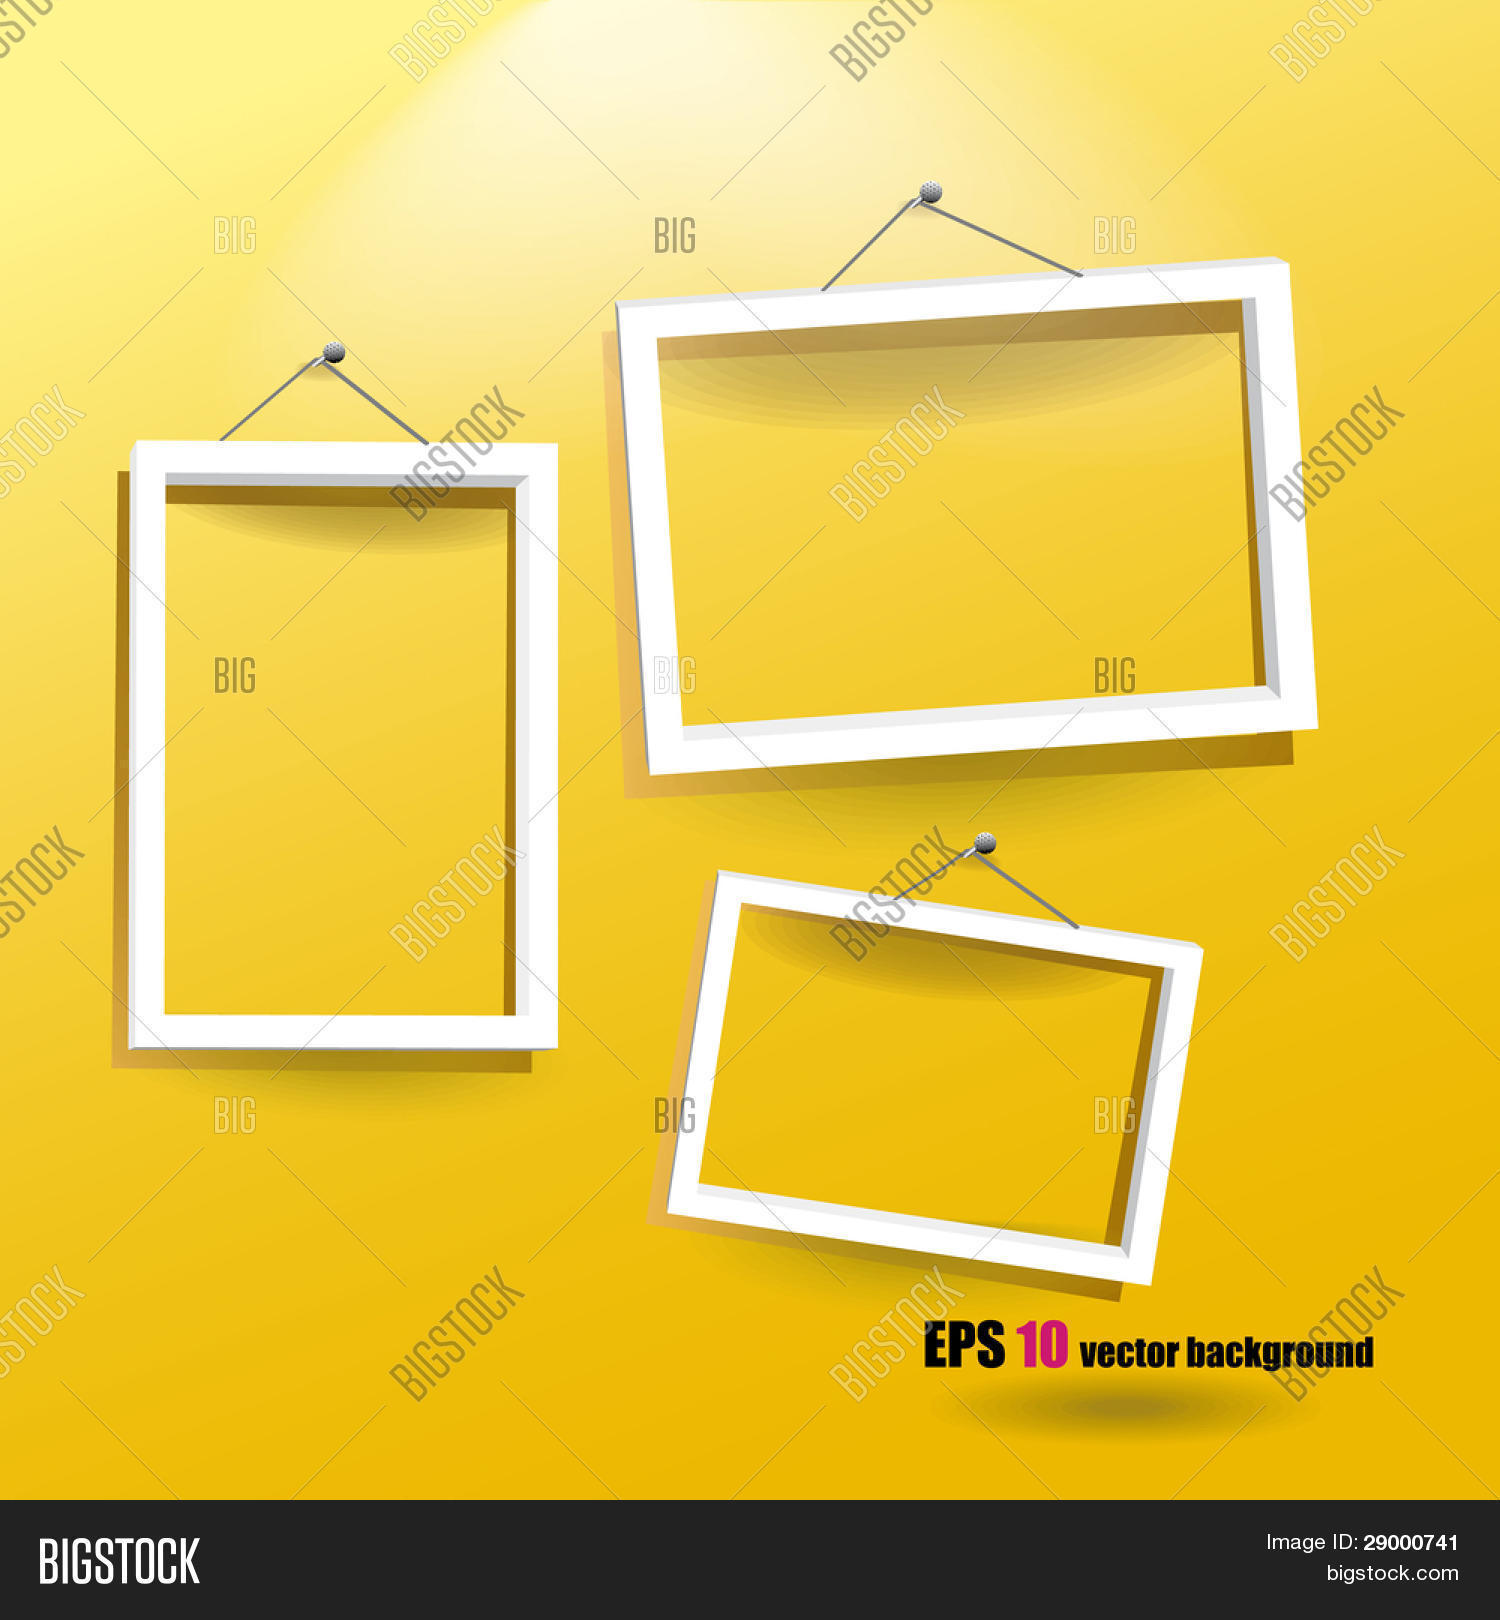 White Frames On Yellow Wall Vector & Photo | Bigstock